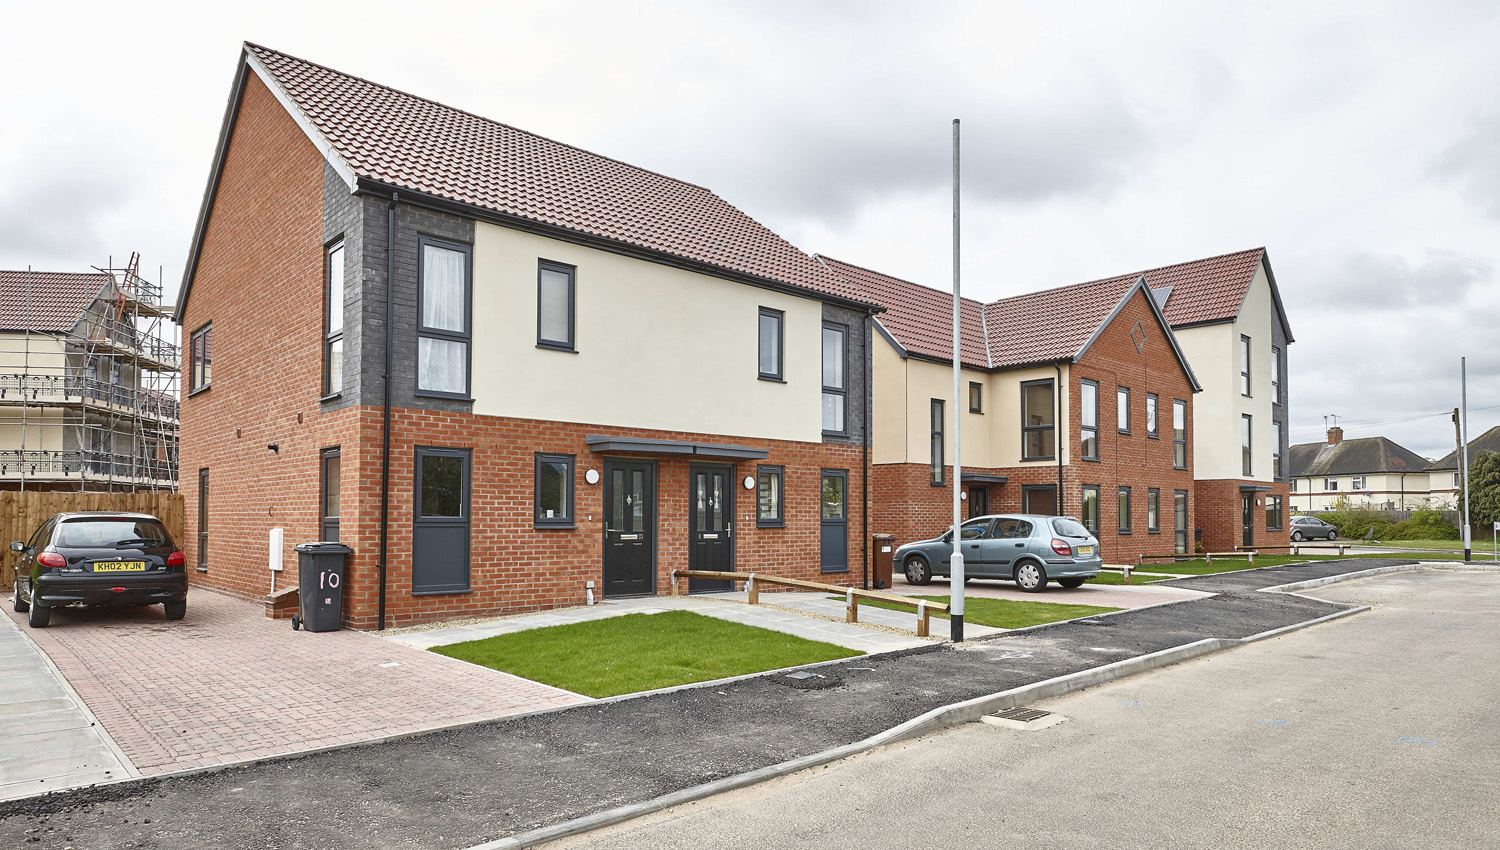 108 new build one, two and four bedroom homes at Bader Close, Ipswich